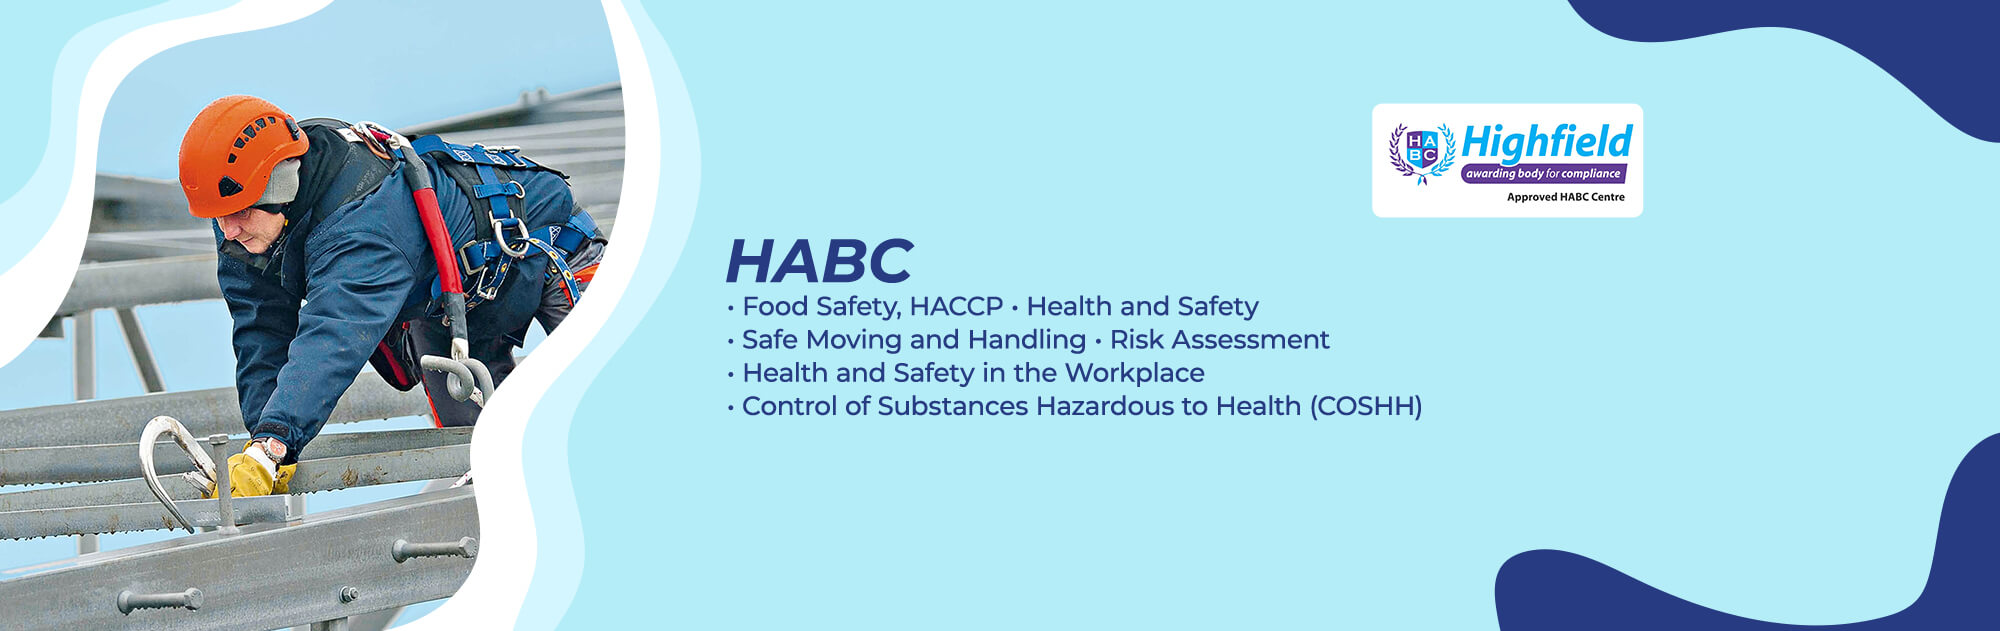 HABC - Food Safety, HACCP, Health and Safety, Safe Moving and Handling, Risk Assessment H&S in the Workplace, Control of Substance Hazardous to Health (COSHH)